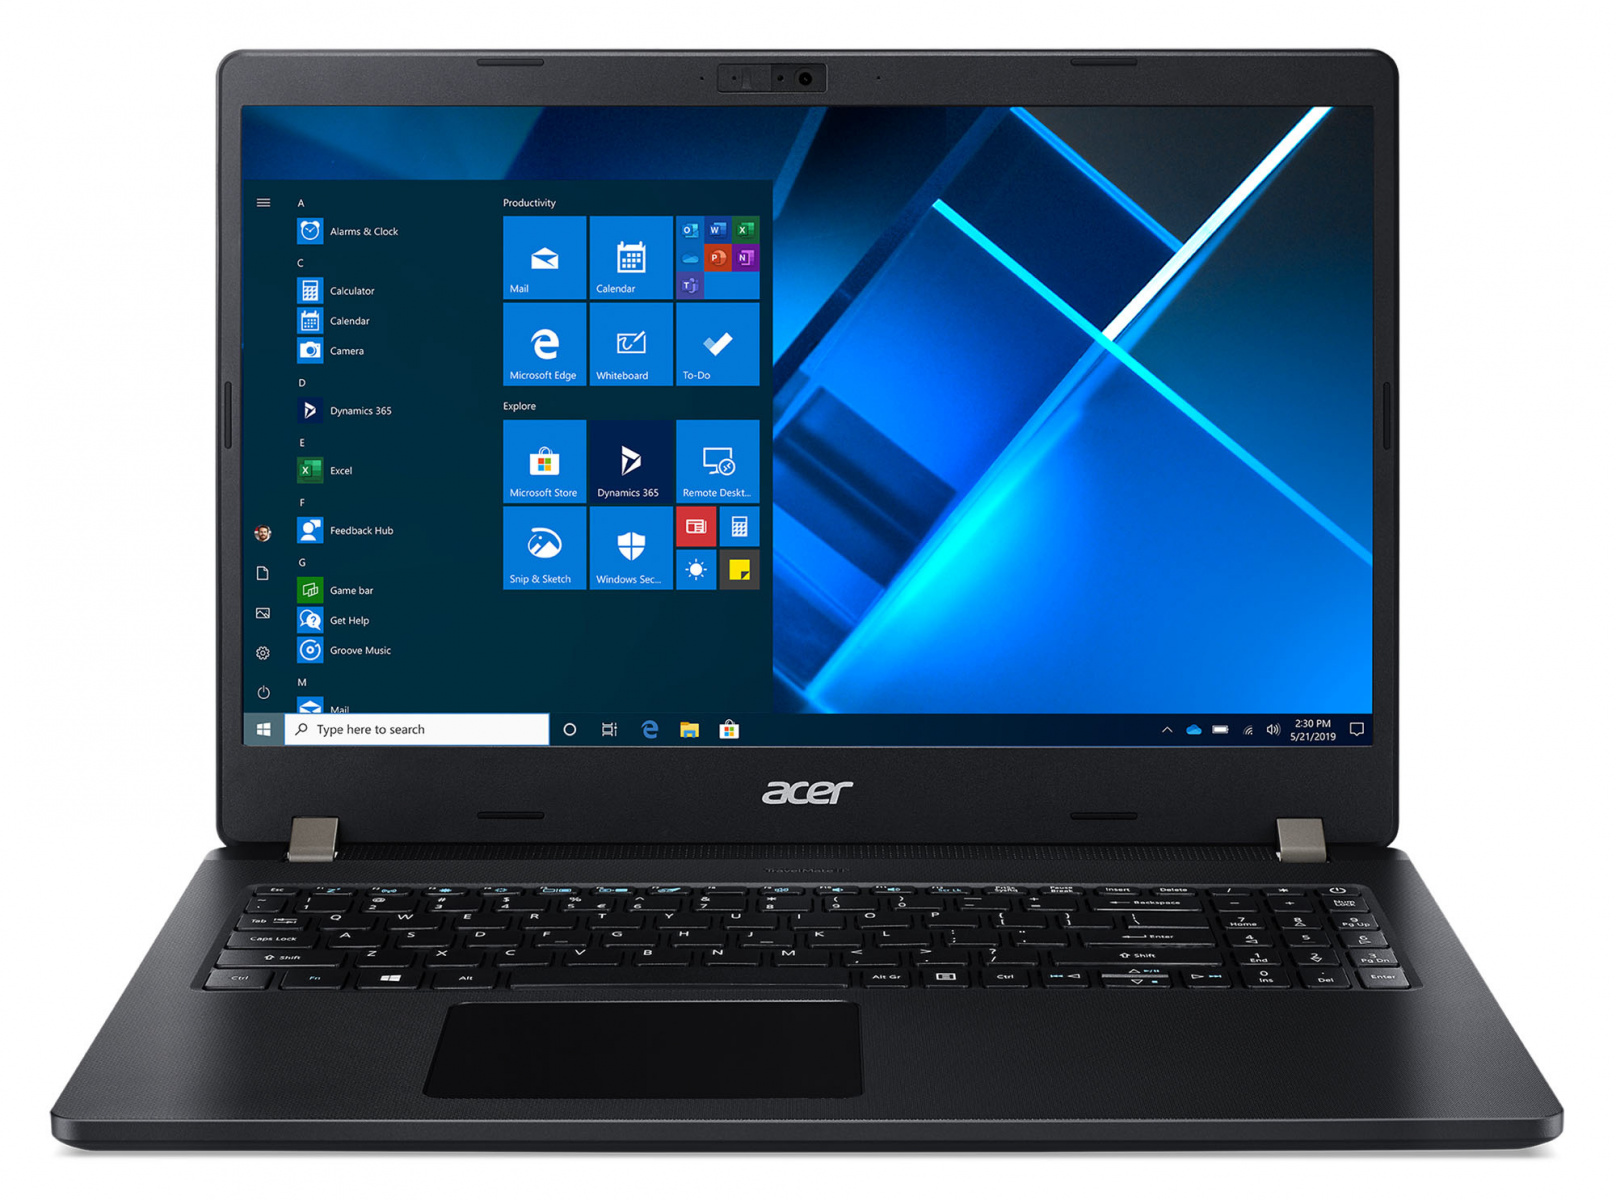 Ноутбук Acer TMP215-53-36CS TravelMate 15.6'' FHD(1920x1080) IPS nonGLARE/Intel Core i3-1115G4 3.00GHz Dual/8 GB+256GB SSD/Integrated/WiFi/BT/1 MP/SD,SDXC,SDHC/Fingerprint/3cell/1,8 kg/W10Pro/3Y/BLACK - интернет-магазин Skyey.ru